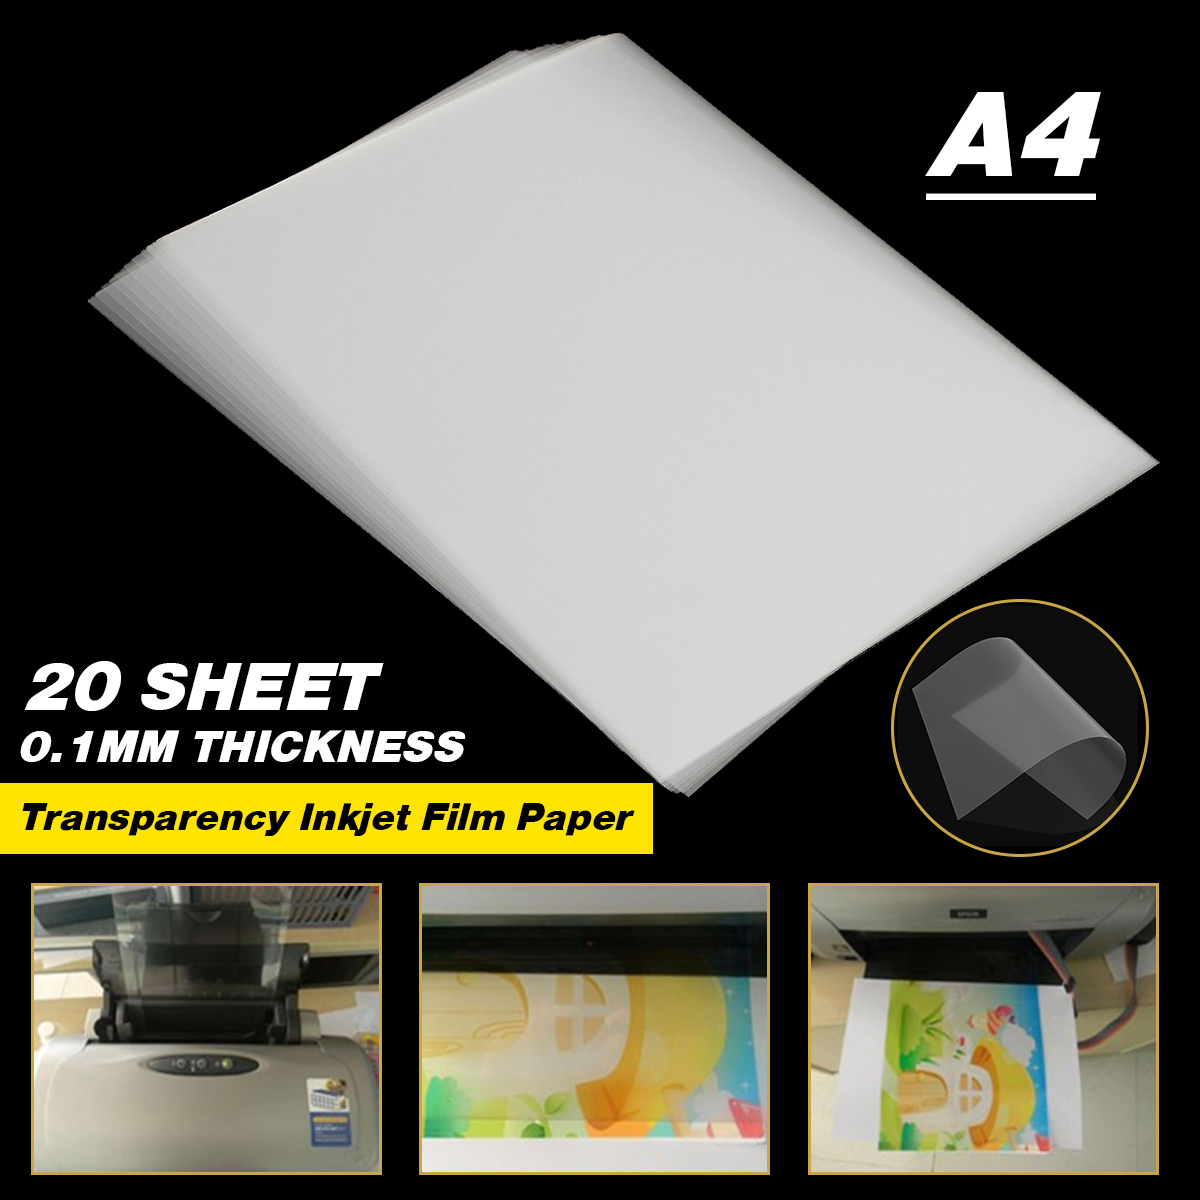 20 Sheet A4 Transparent Inkjet Film Paper Screen Printing Print Stencil Design Non-waterproof Thickness 0.12mm 29.6 X 21cm